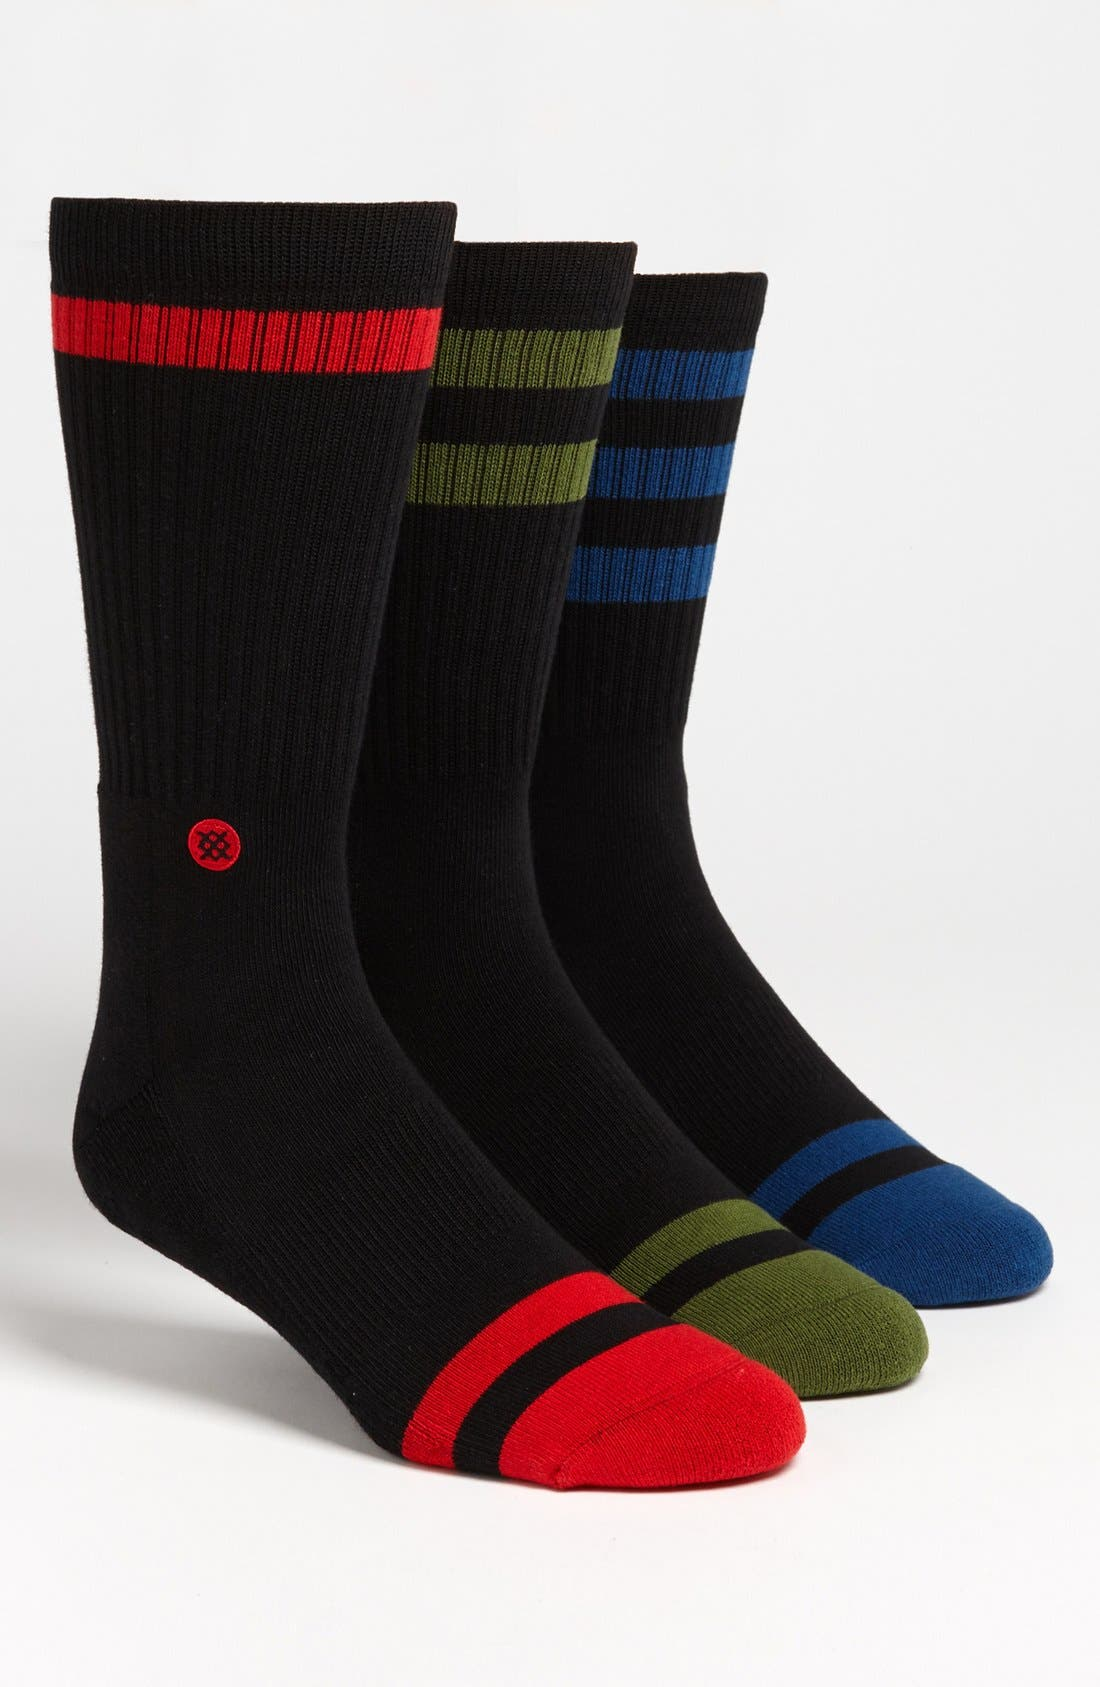 Alternate Image 1 Selected - Stance 'Triple Threat' Crew Socks (Set of 3)